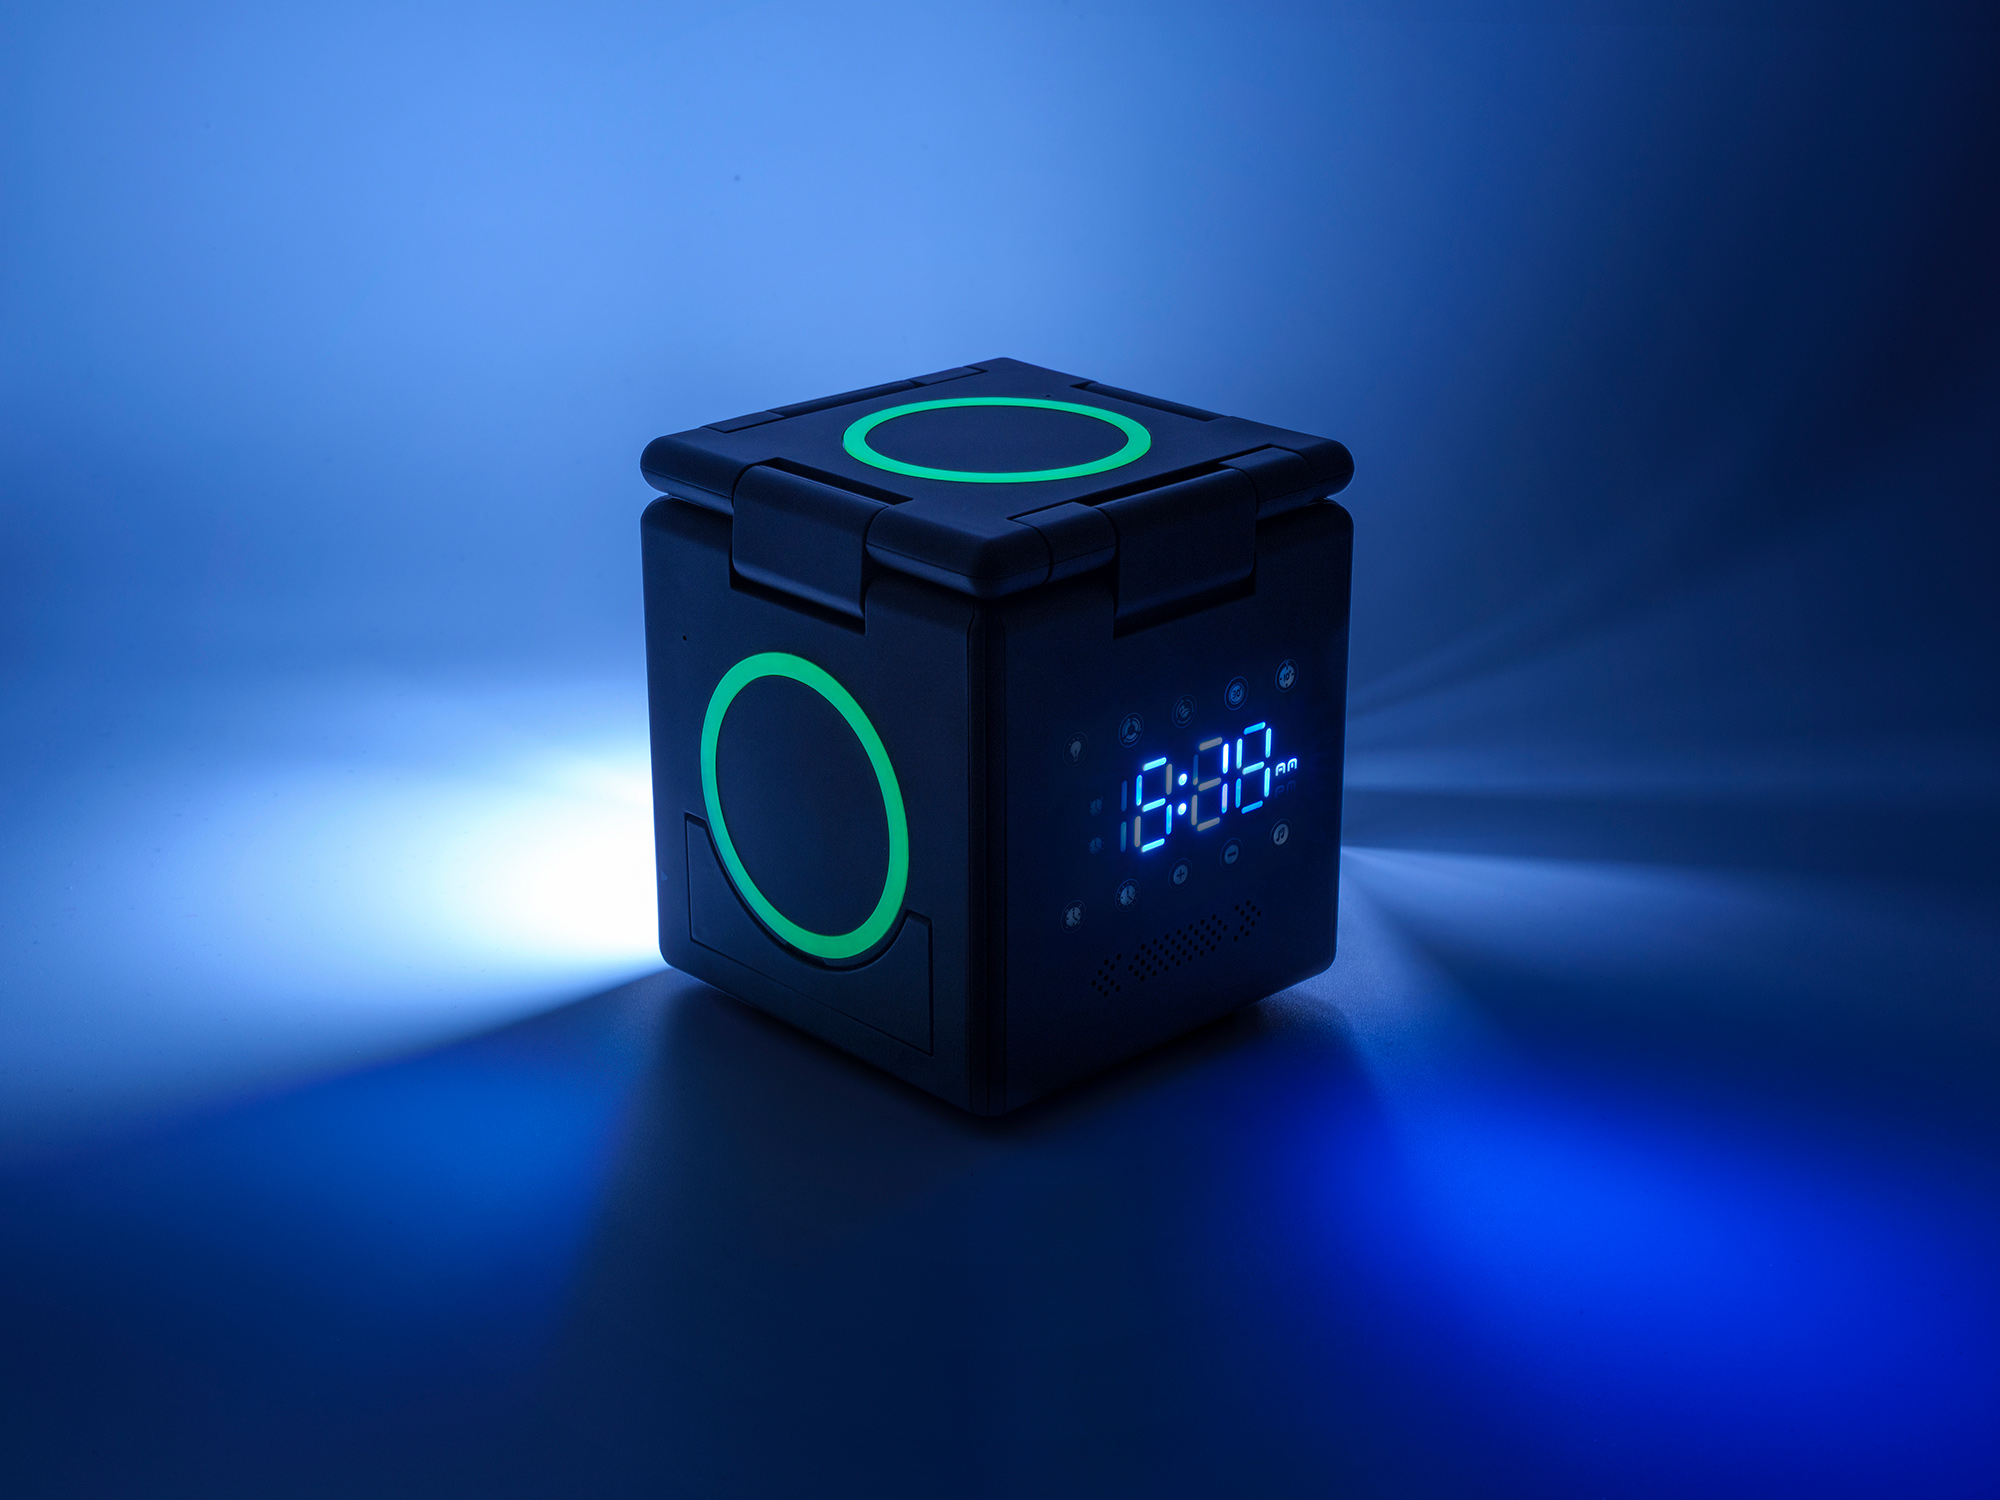 MacRumors Giveaway: Win a HyperCube Wireless Charging Station From Ampere